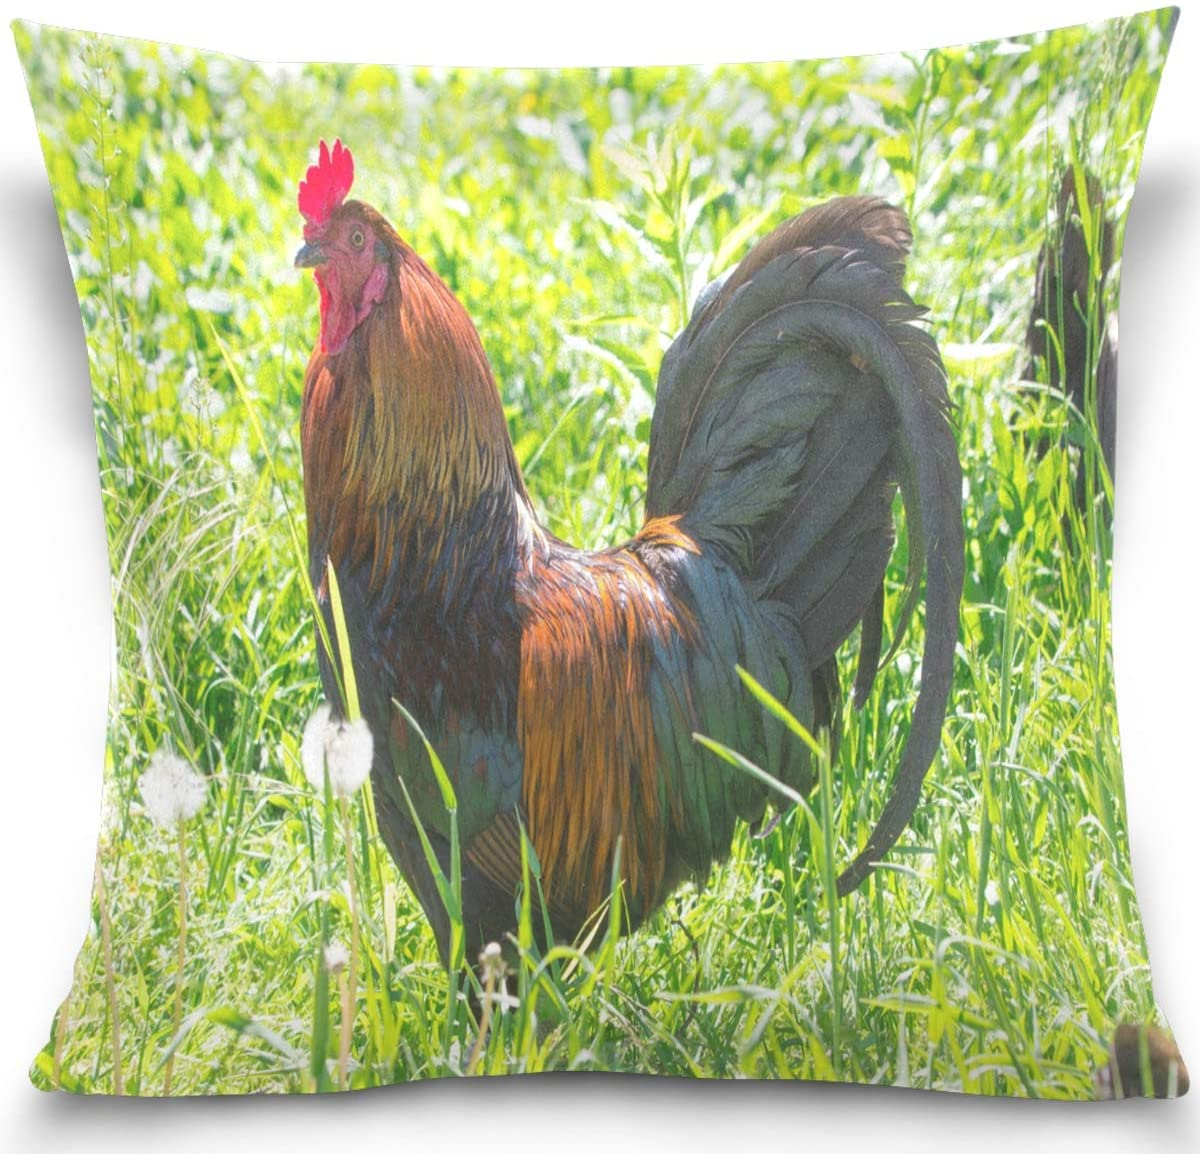 Olinyou Rooster Grass Animal Farm Cock Throw Pillow Covers Square Soft Cotton Velvet Decorative Pillowcase Cushion Cover 20 x 20 Inch